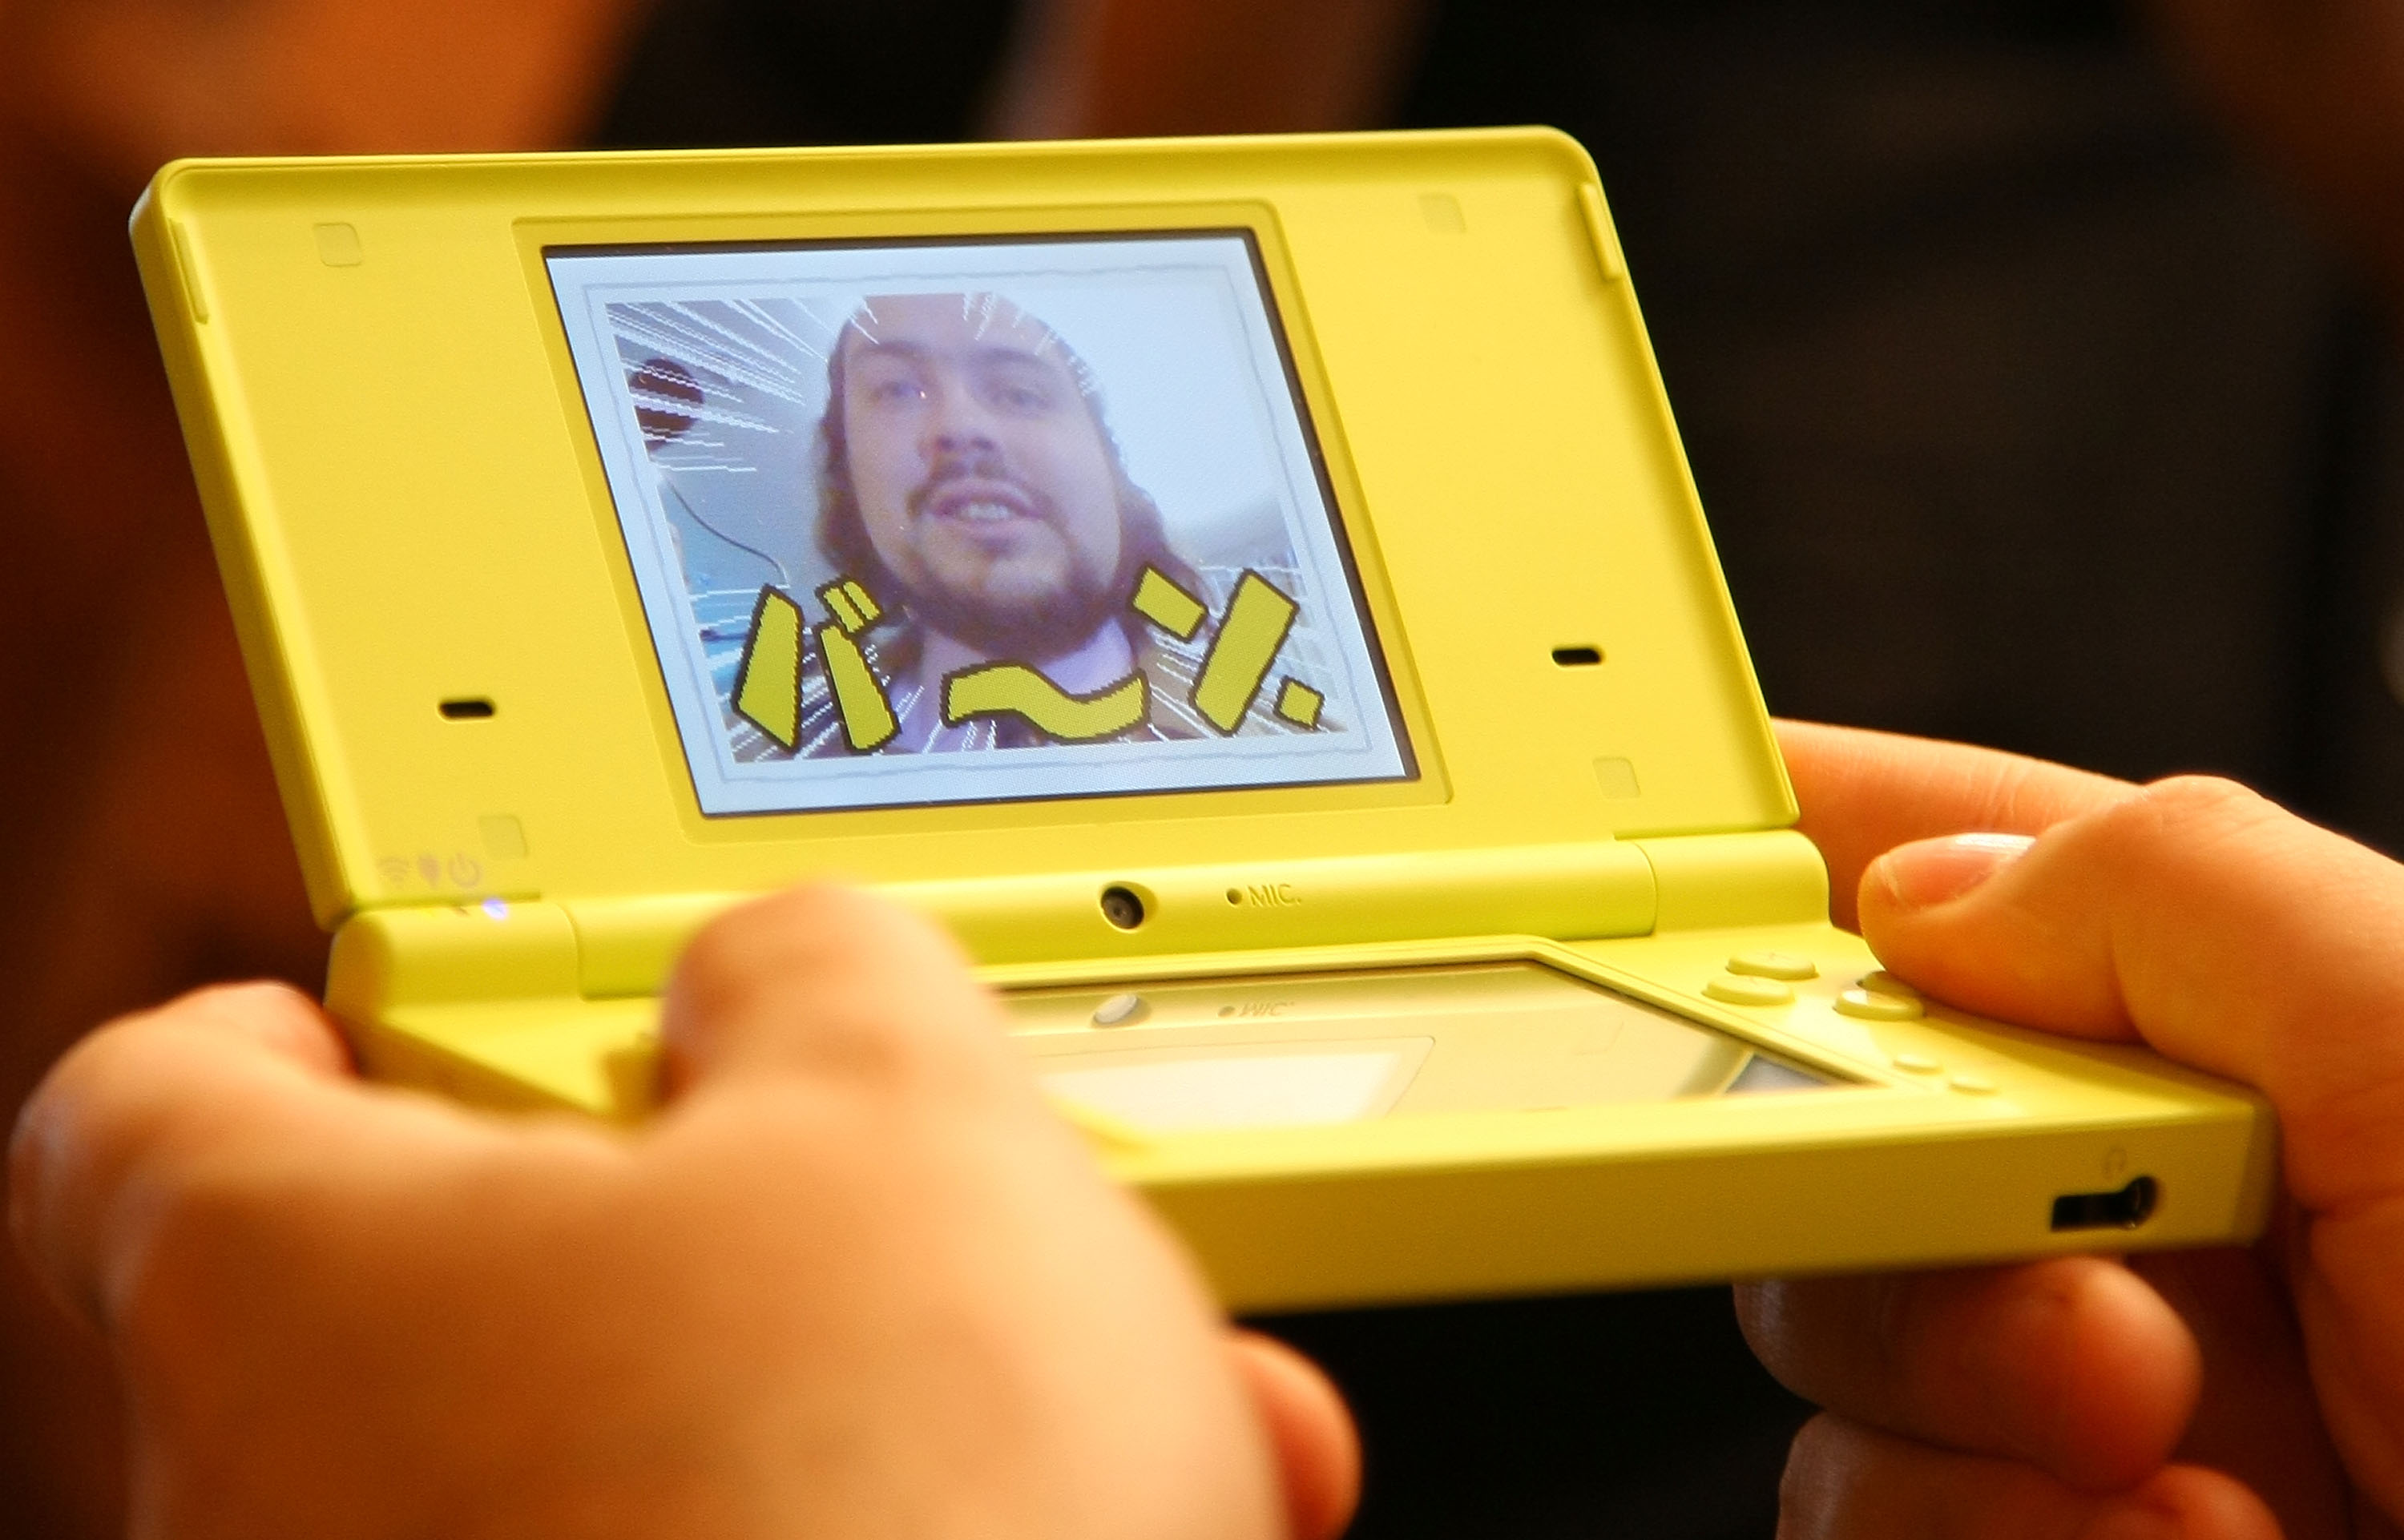 How to Get YouTube to Work on a DSi | It Still Works